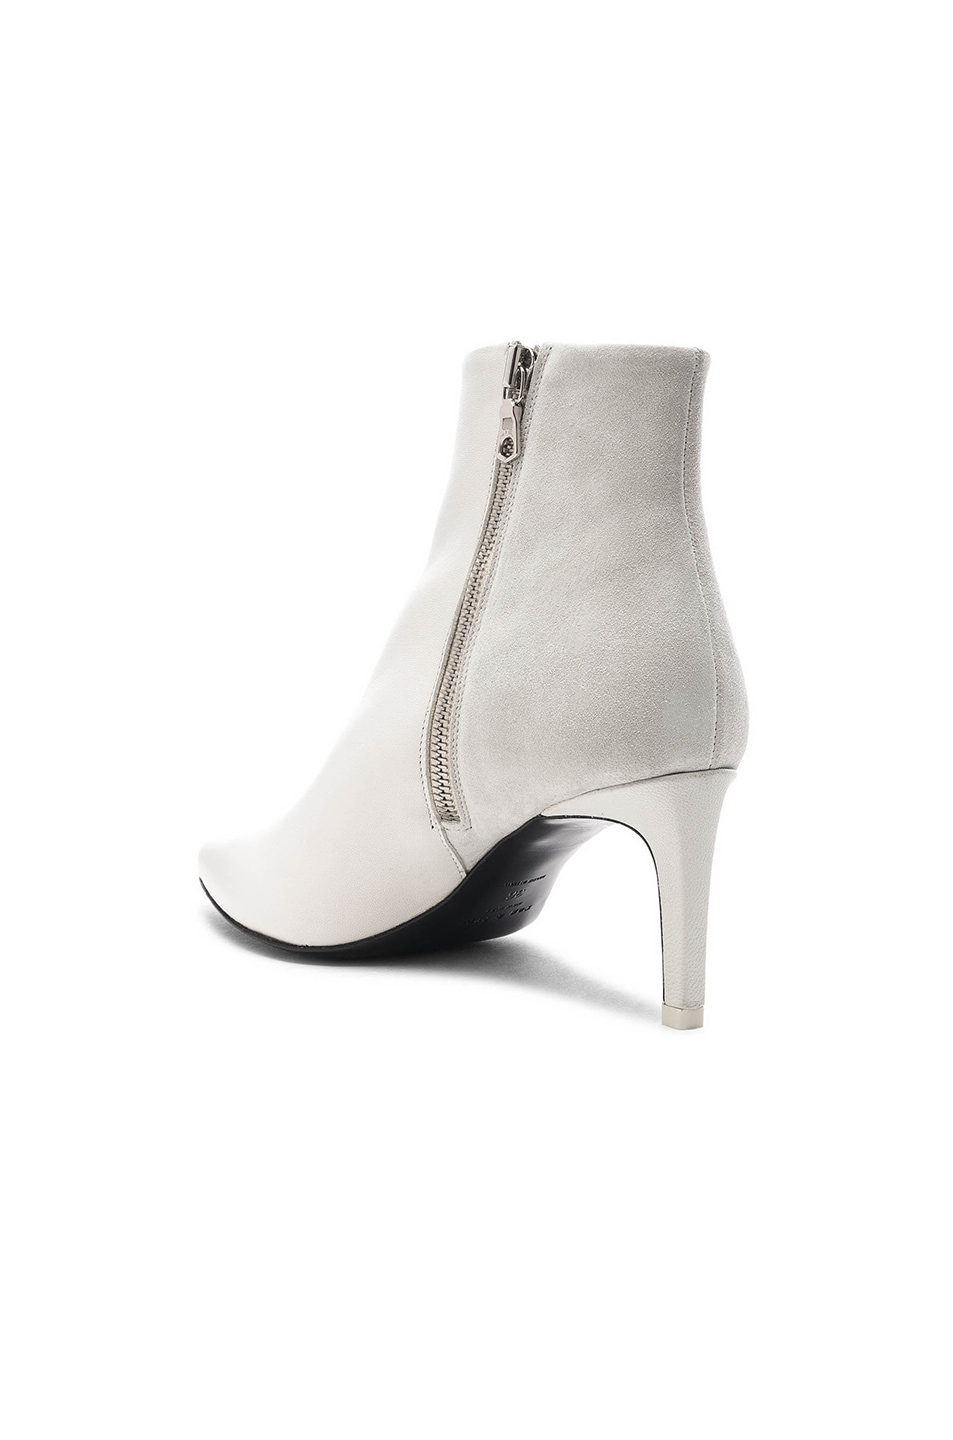 Image 3 of Rag & Bone Leather Beha Boots in White